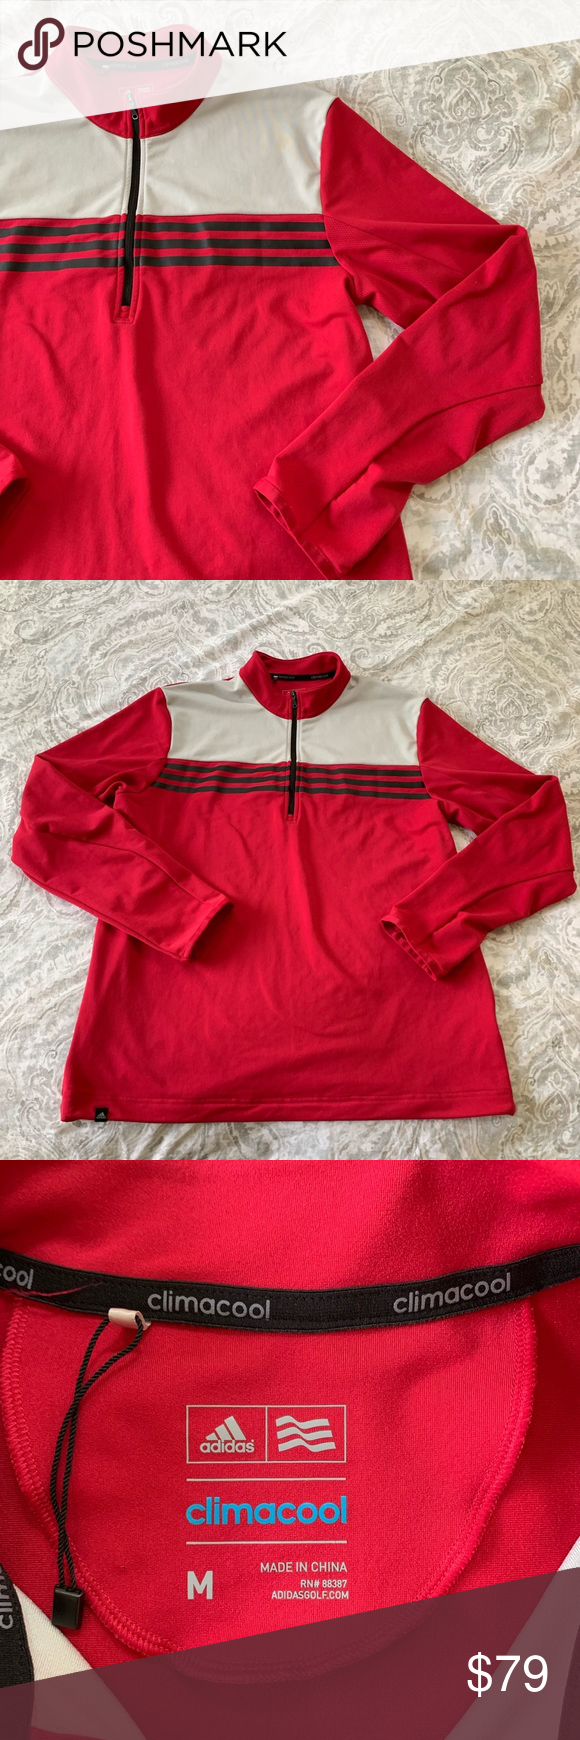 save off 2a77f 26228 NWOT Adidas Climacool Pullover Jacket Red Medium NWOT Red ...